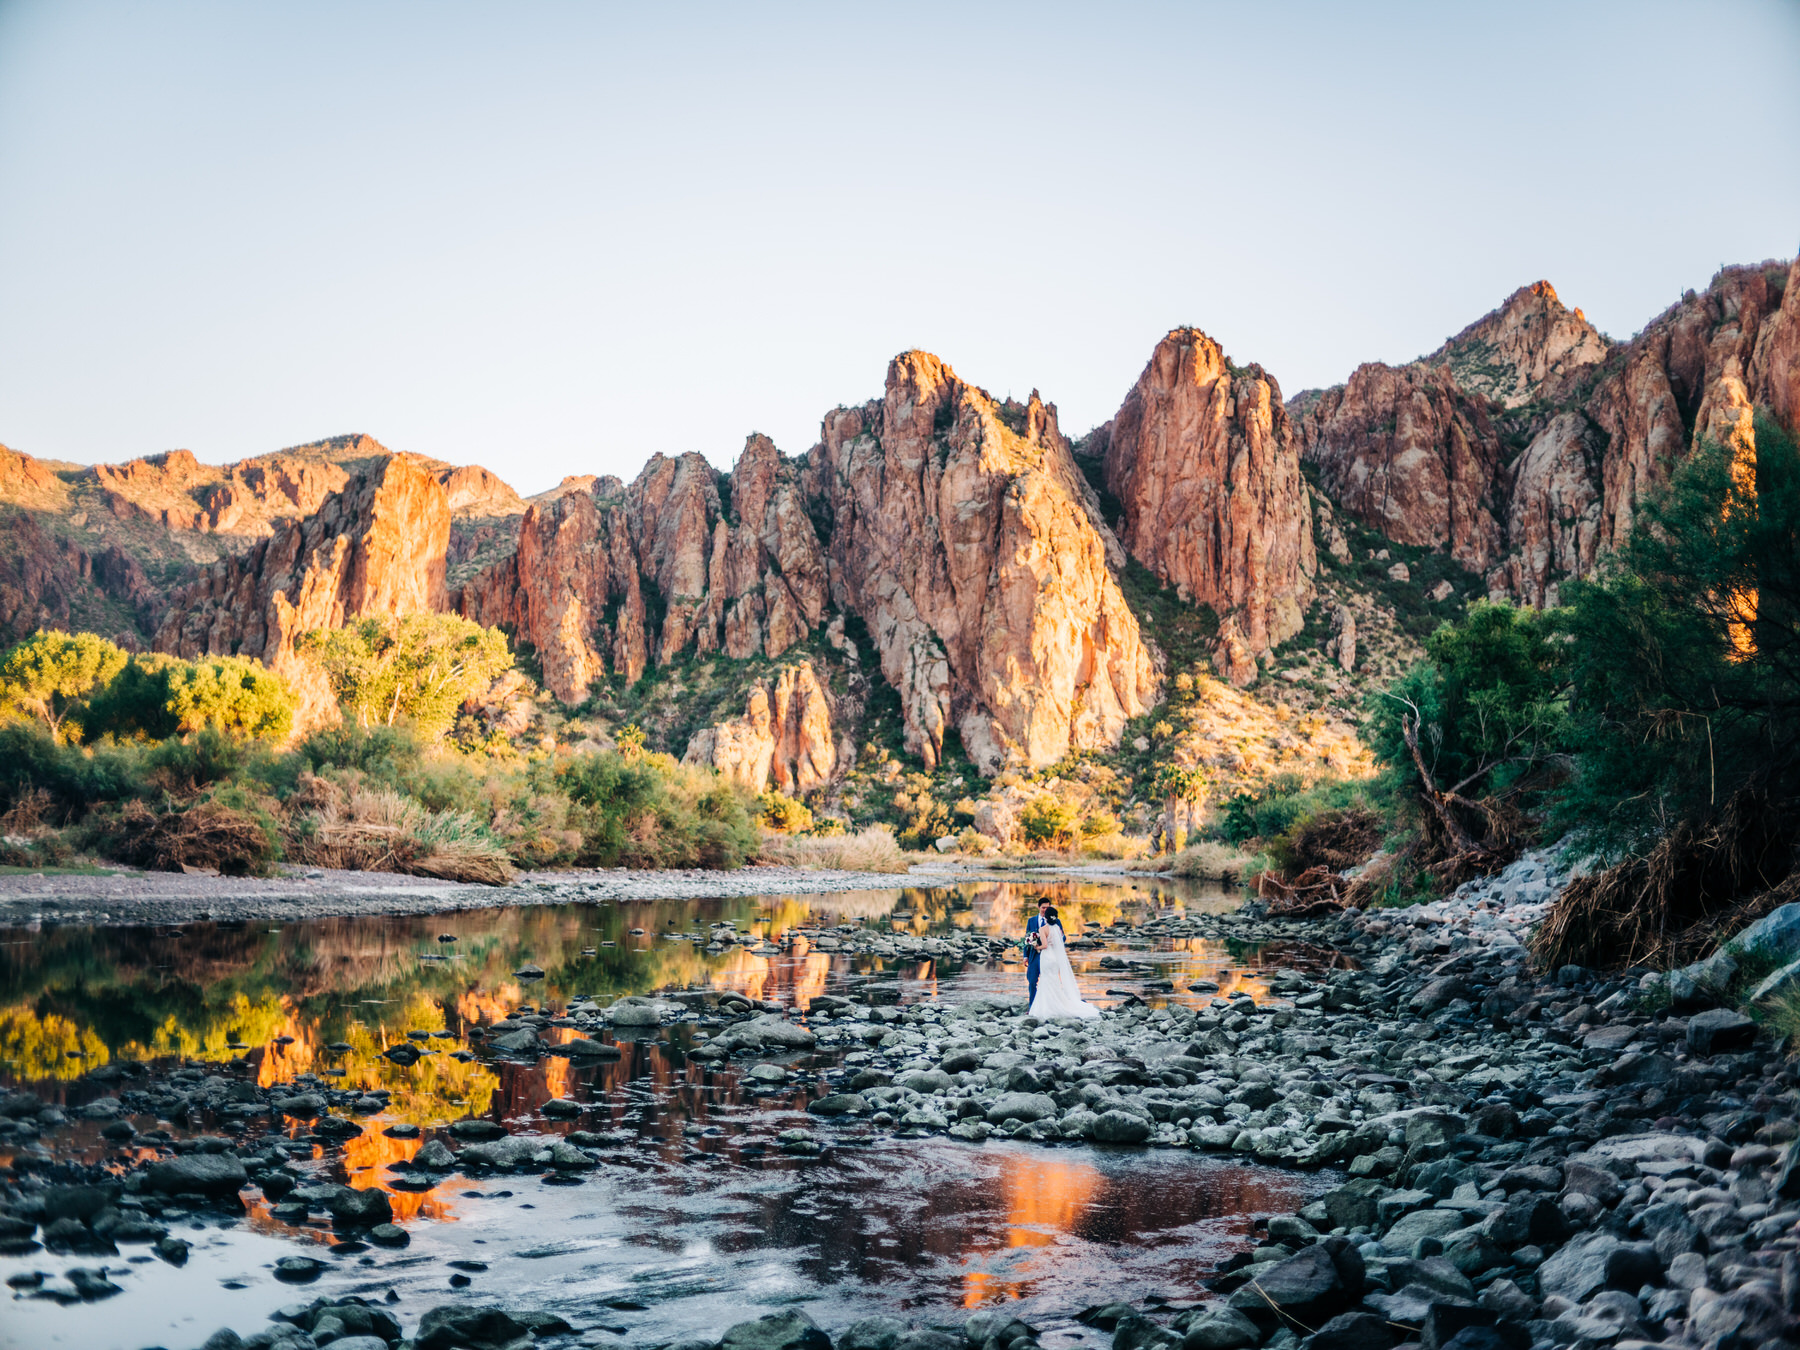 Salt River sunset with Bride and Groom under the mountains in Arizona